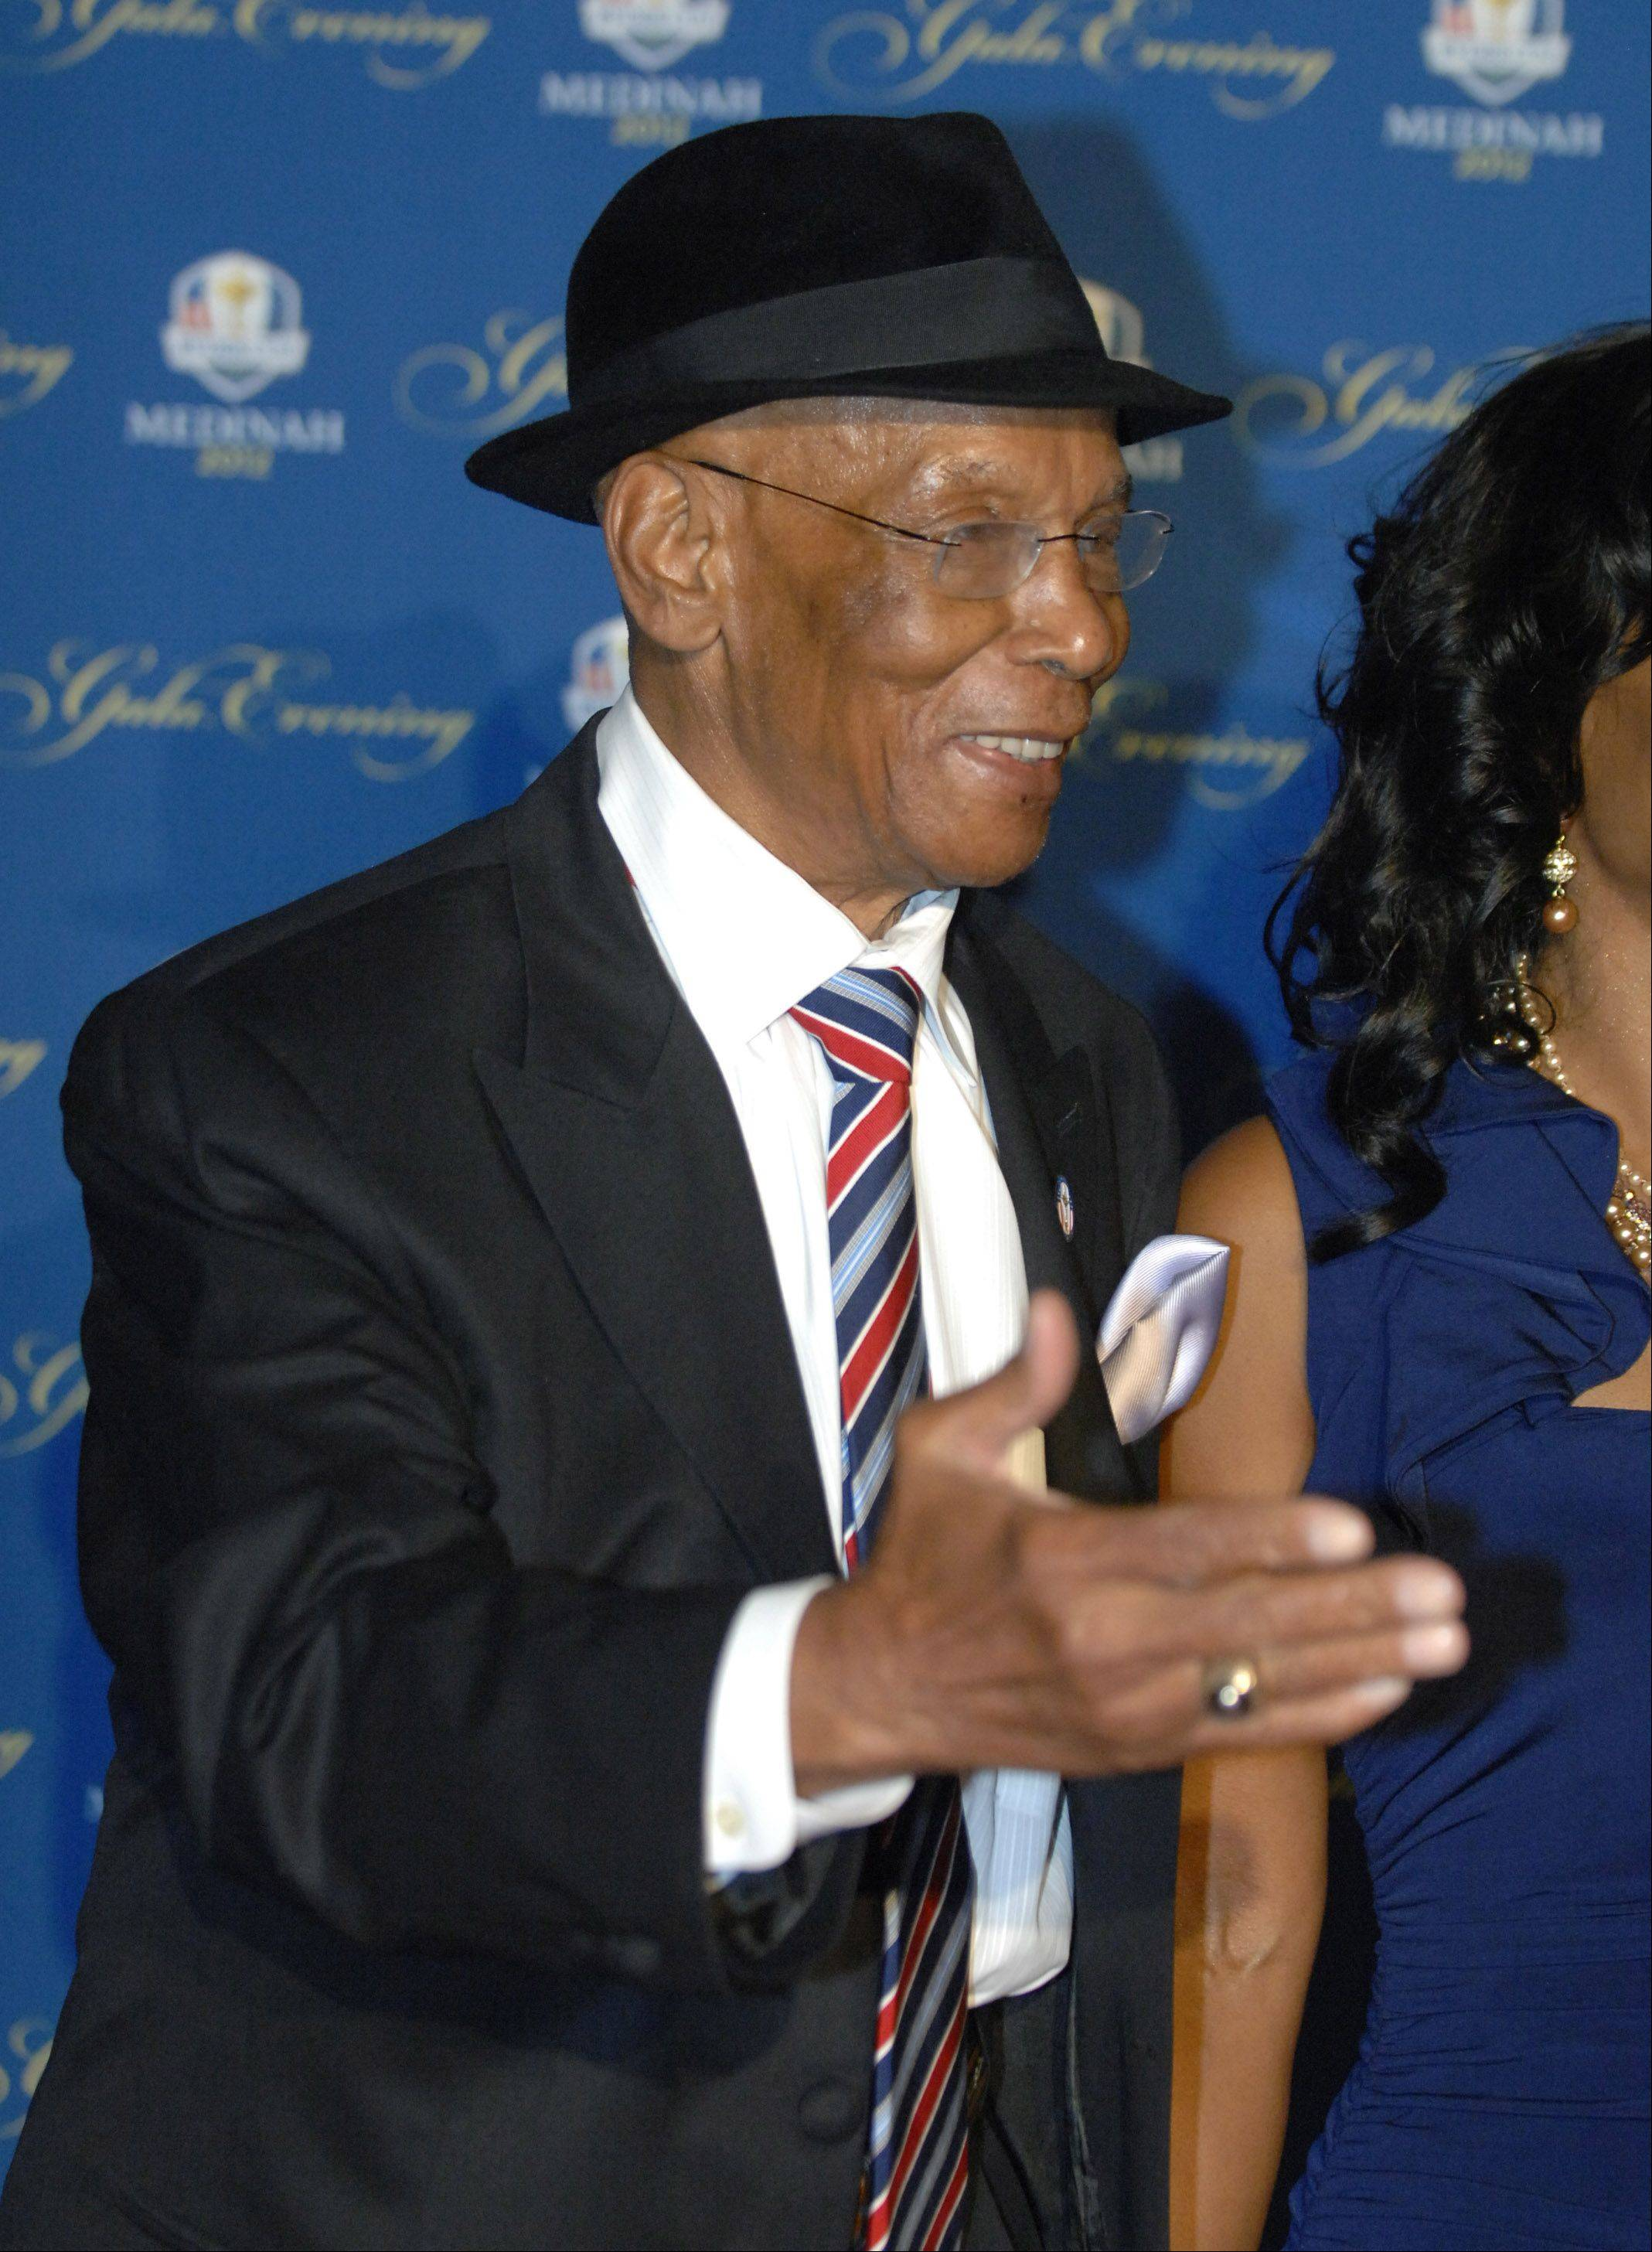 Cubs legend Ernie Banks walks the 39th Ryder Cup Gala red carpet at the Akoo Theatre in Rosemont Wednesday.